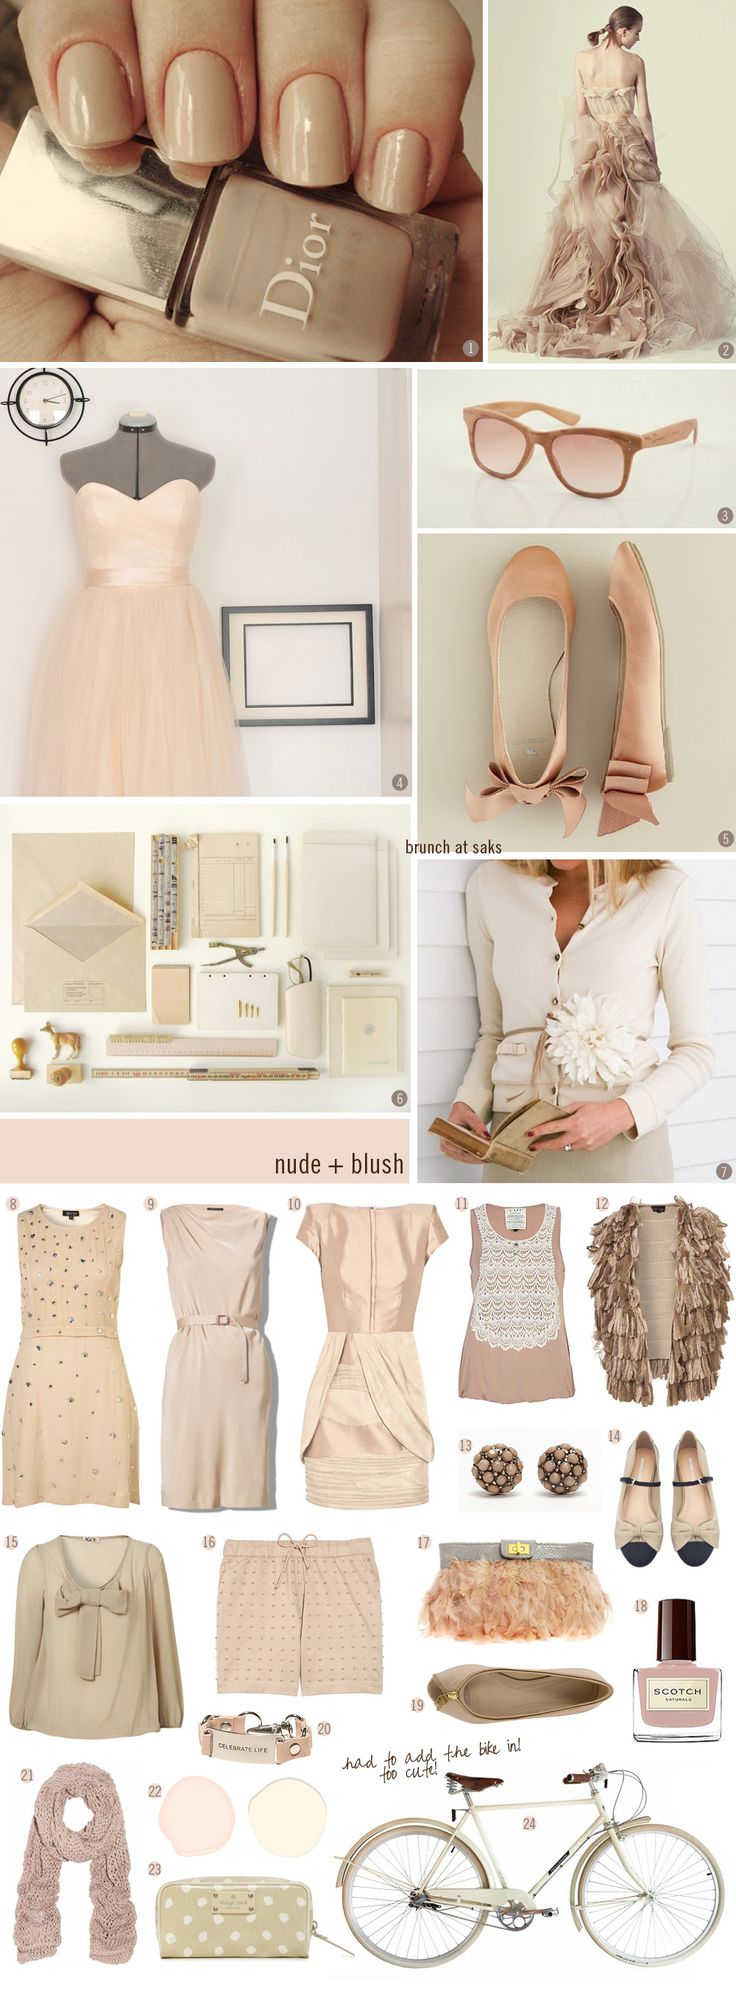 Fabulous nude and blush